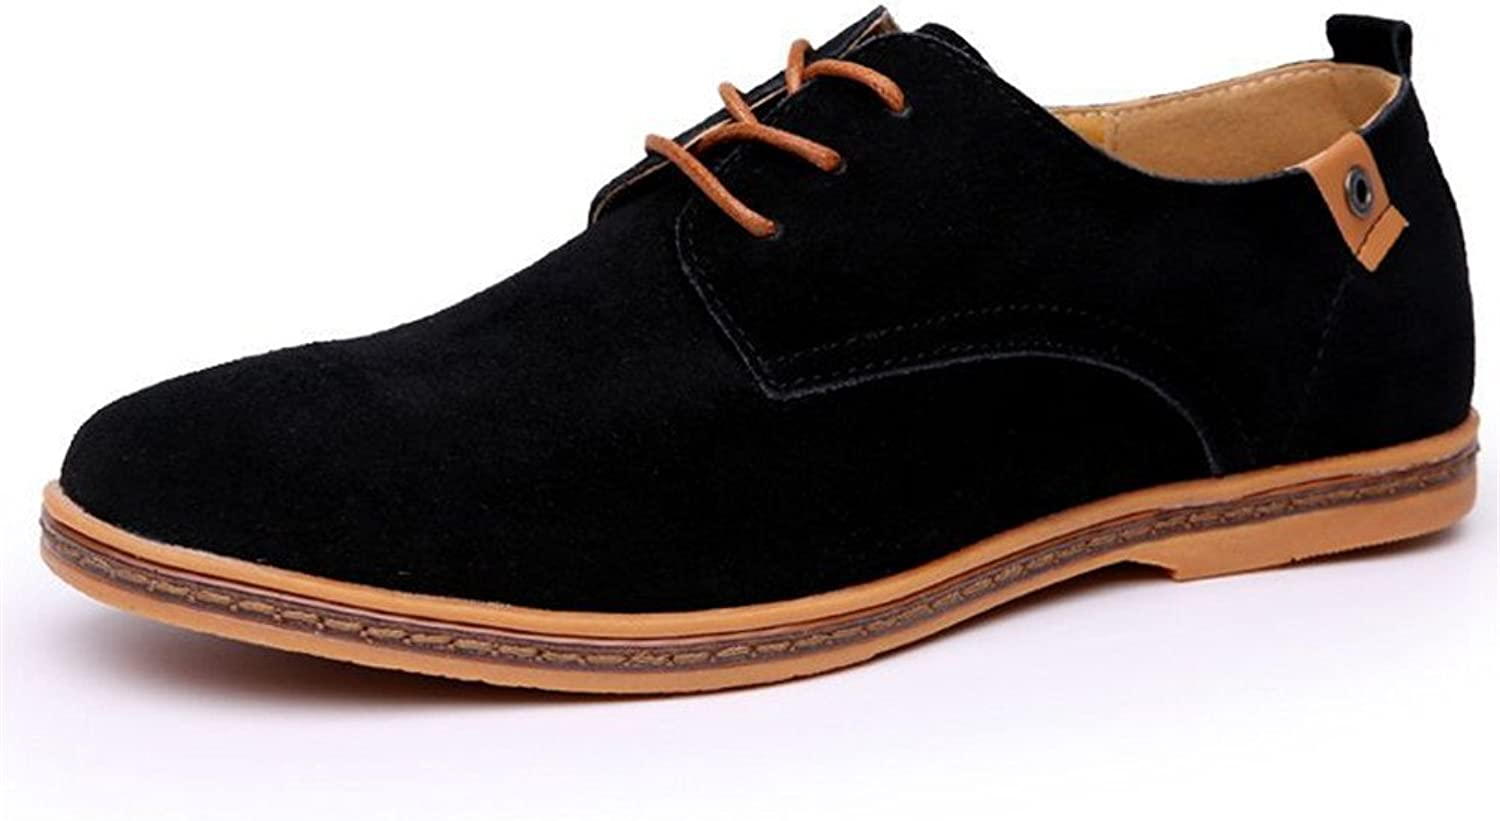 UPWalker Men's Suede Leather Classic shoes Casual Driving Oxfords